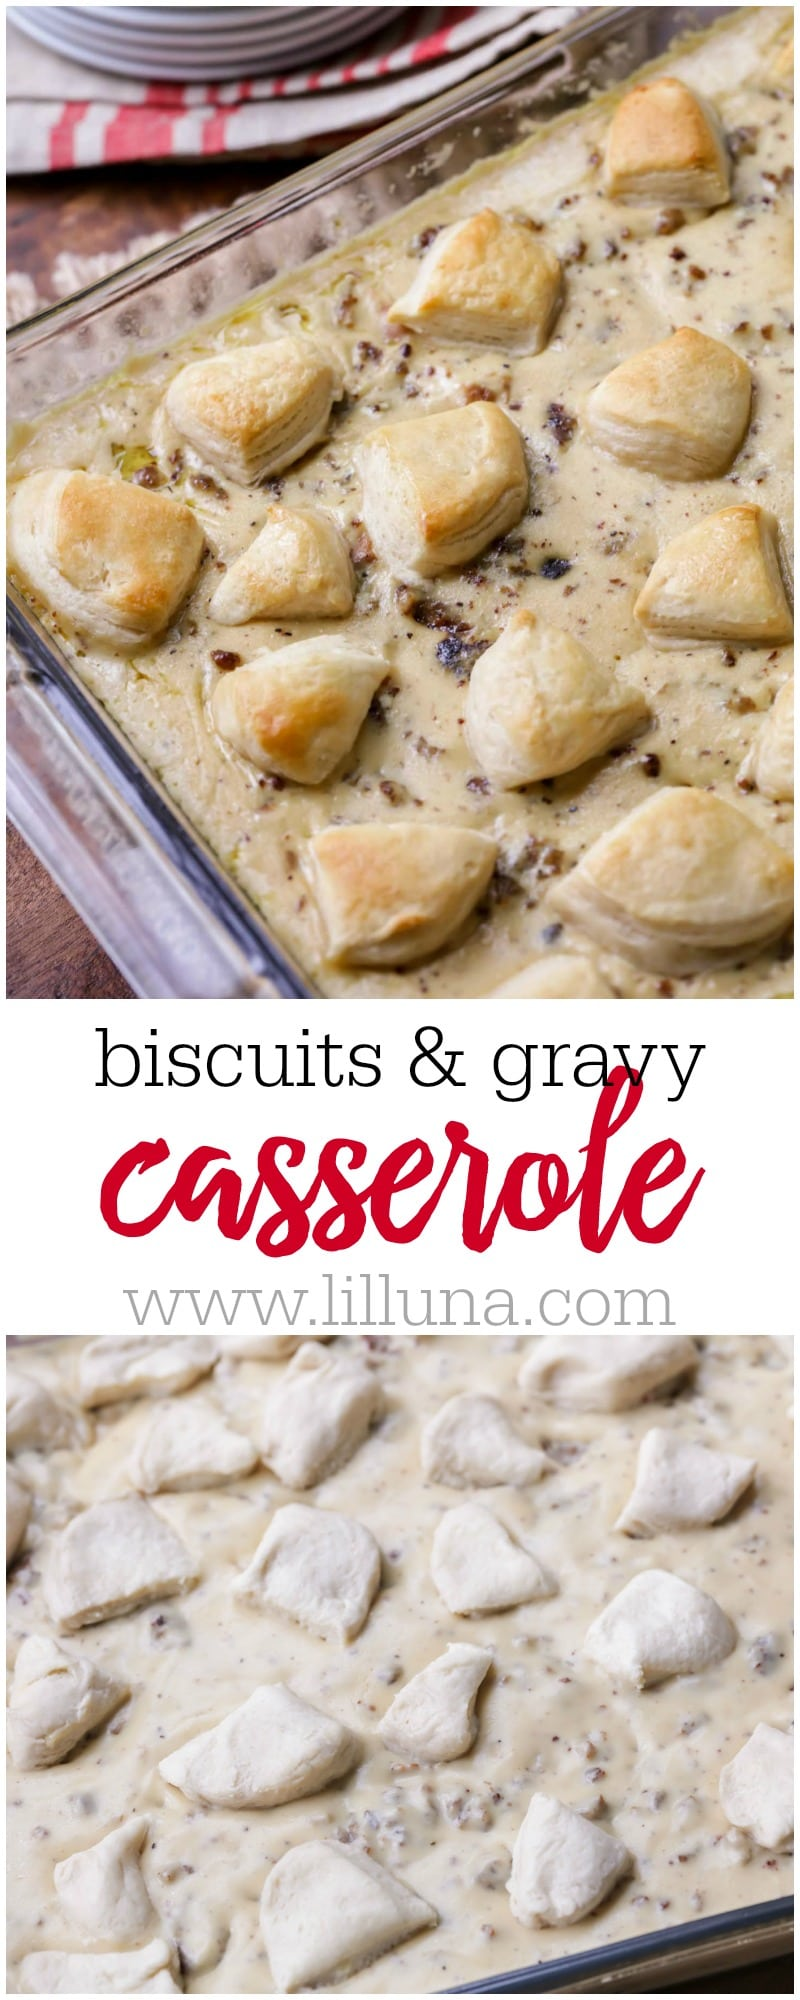 A casserole version of a classic breakfast dish!! This Biscuits and Gravy Casserole is simple and perfect for weekends and holidays!